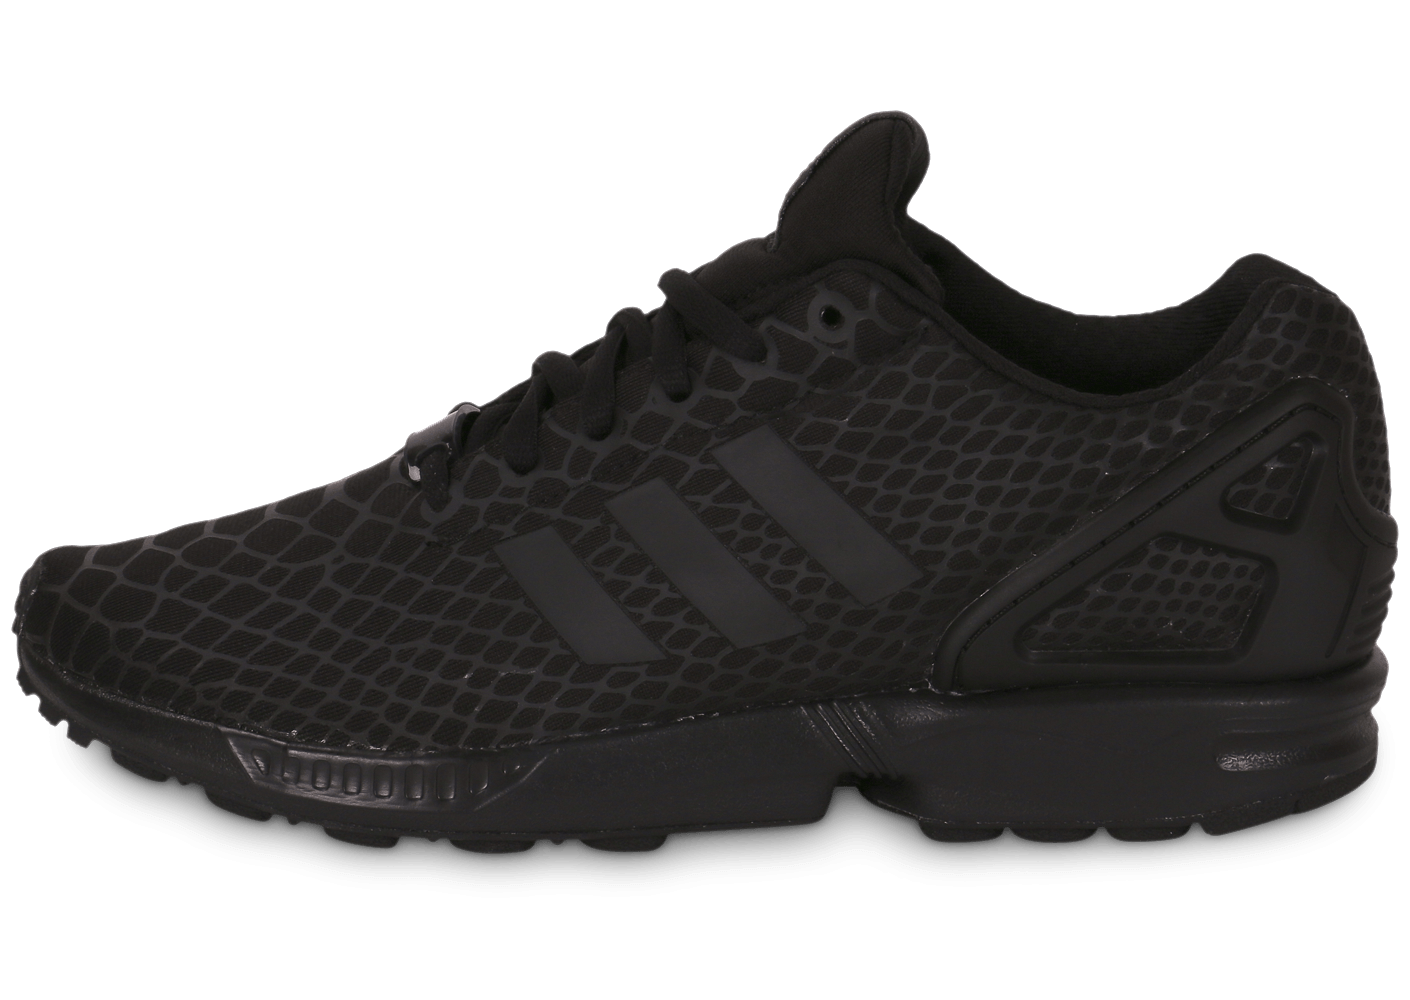 Buy adidas zx flux homme cheap online